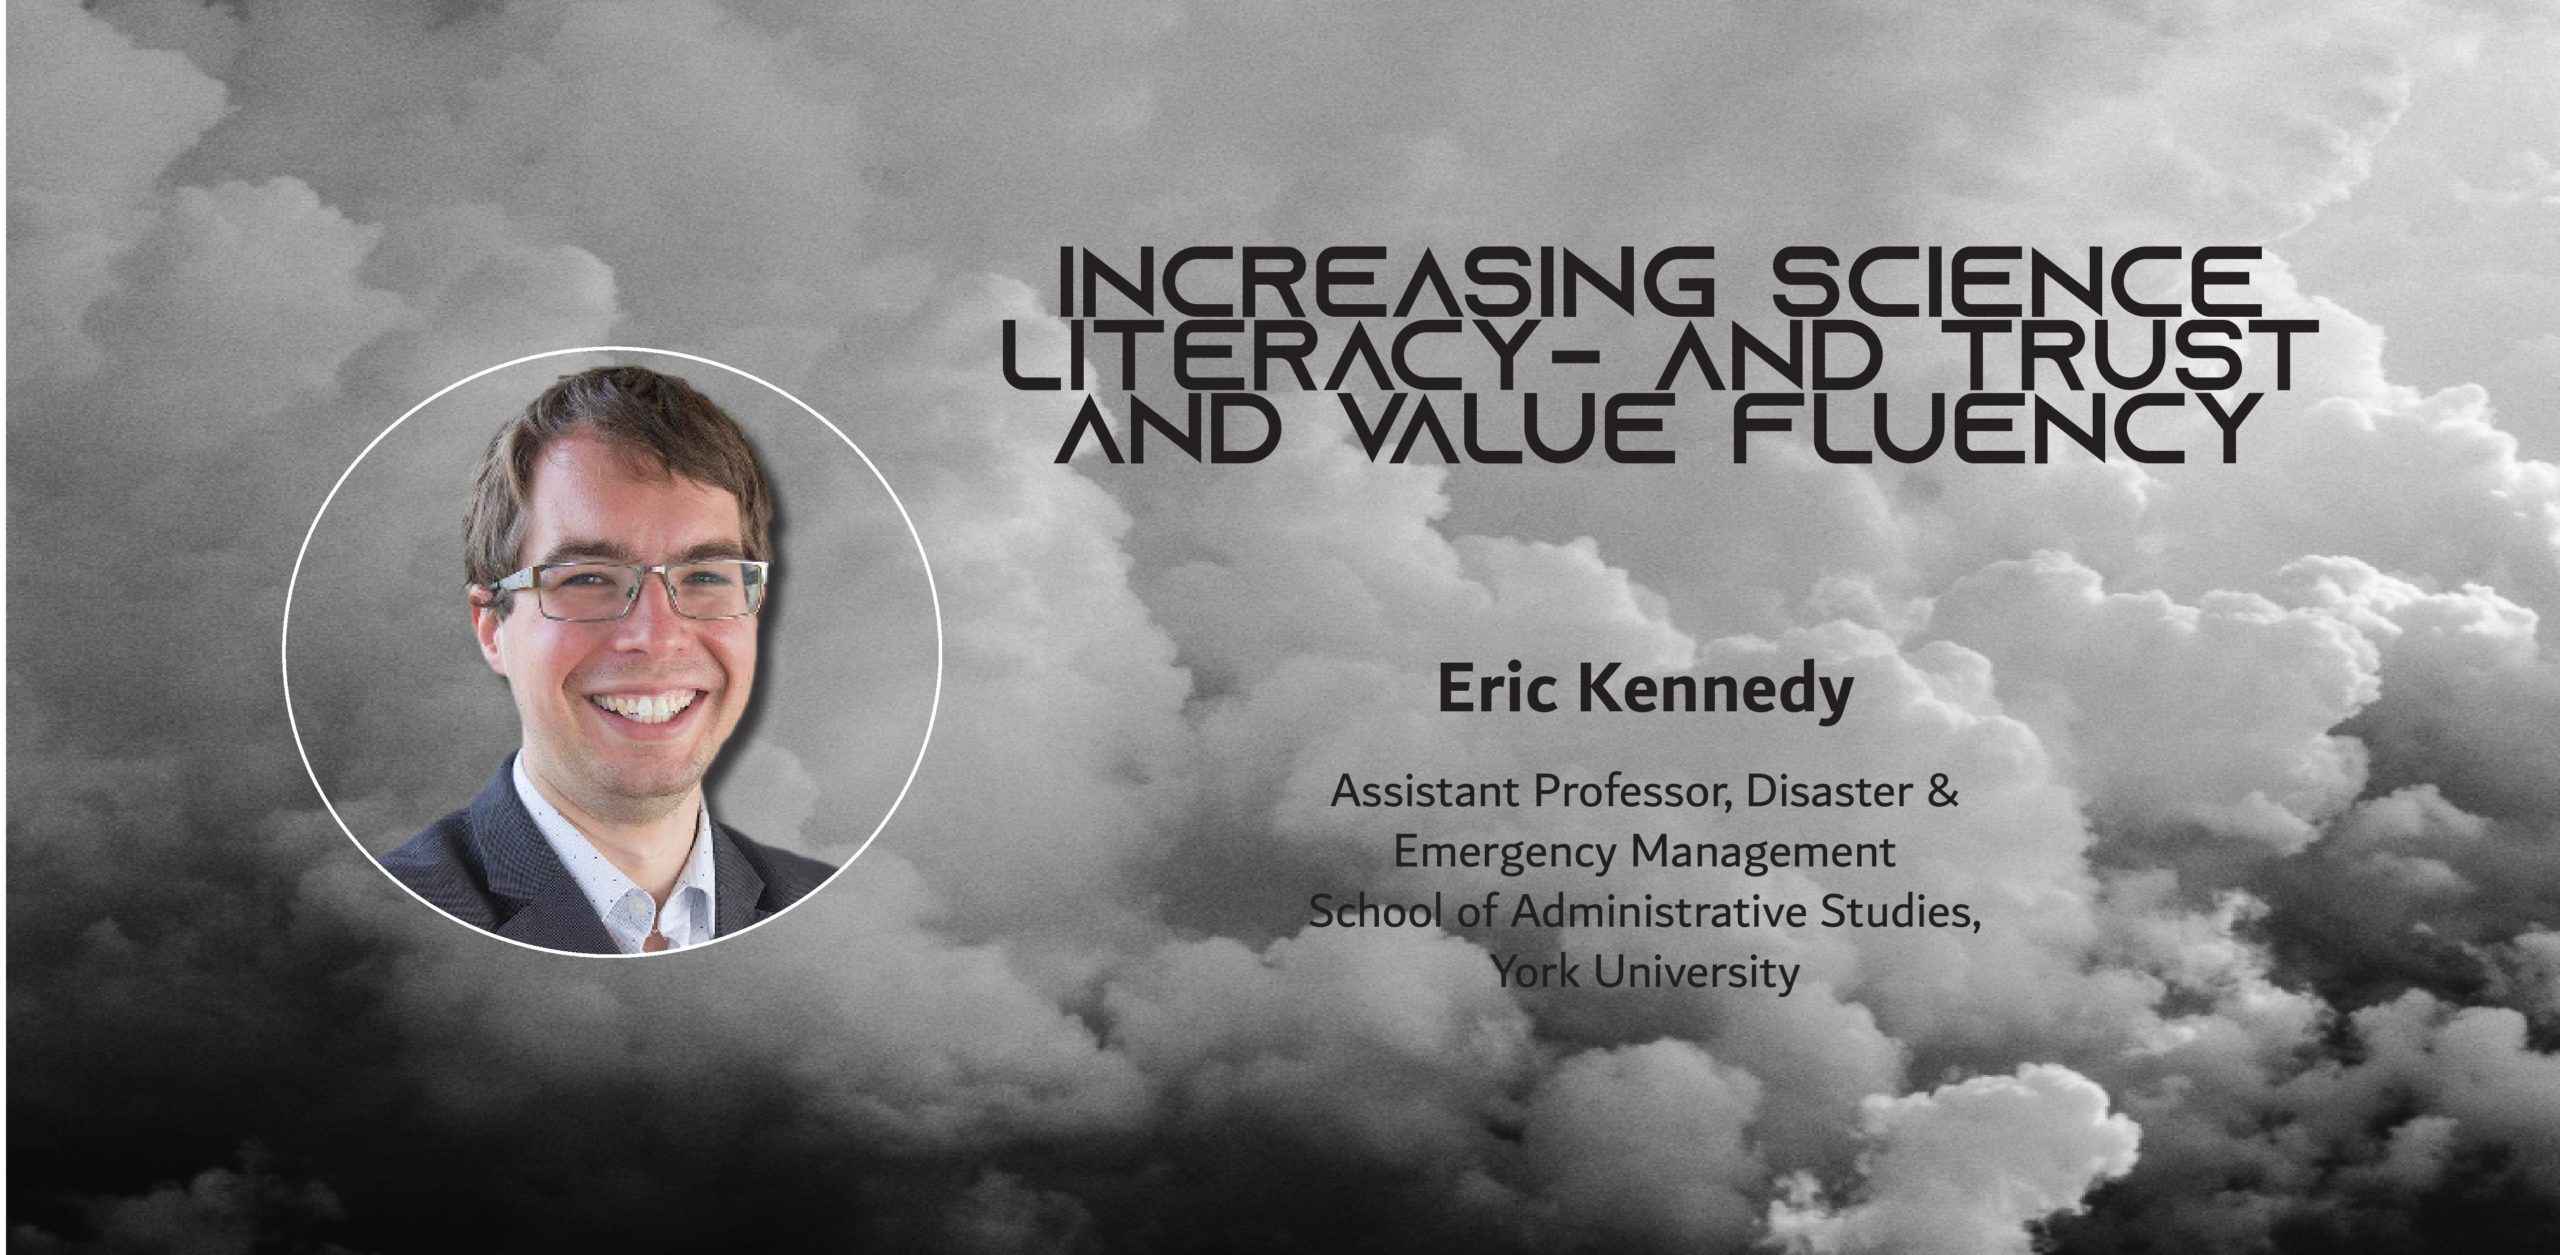 Image of a white man over clouds with the text: Increasing Science Literacyand Trust and Value Fluency Eric Kennedy Assistant Professor, Disaster & Emergency Management School of Administrative Studies, York University